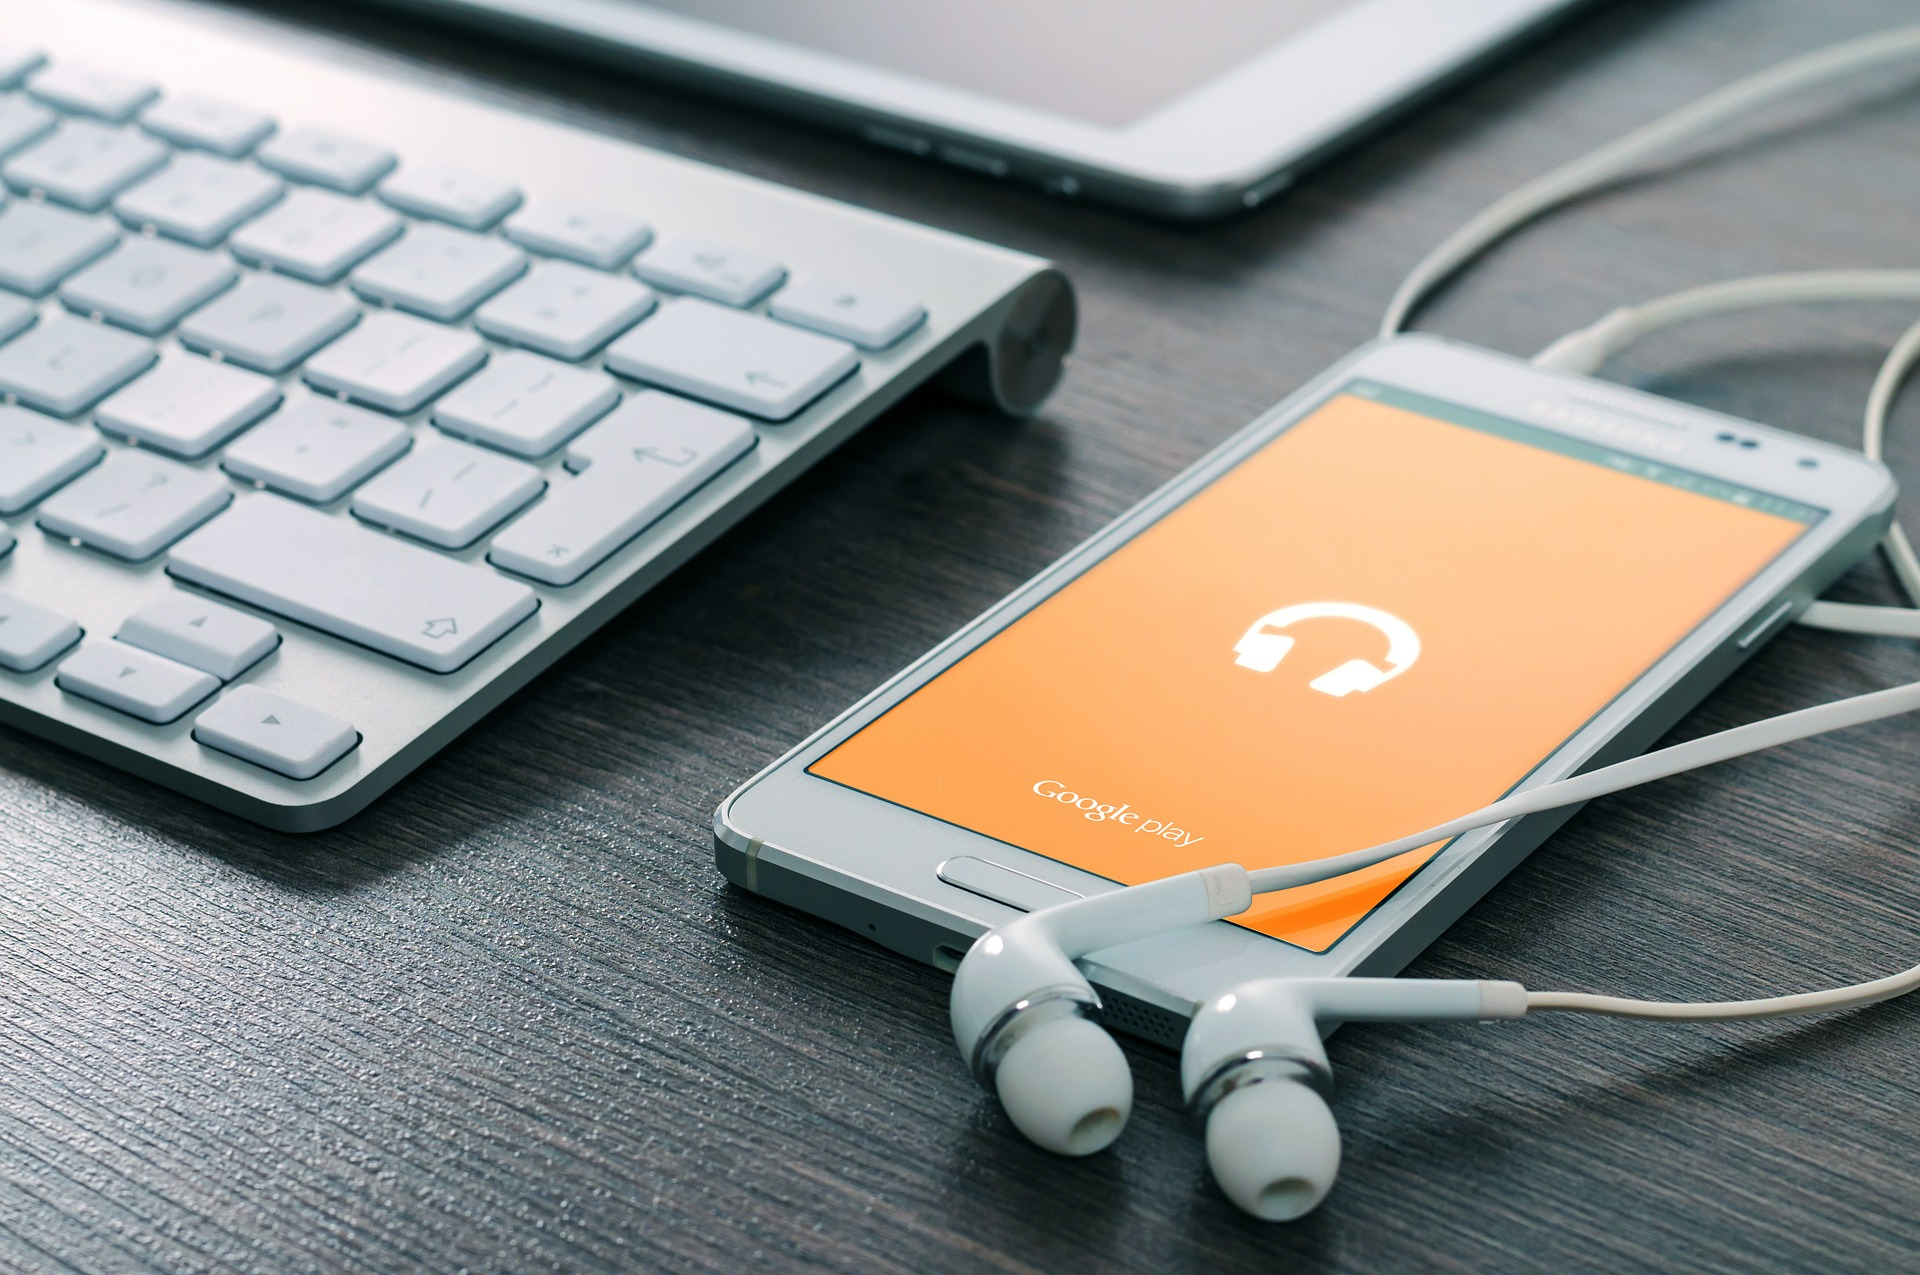 How to Play DRM Protected Music Files on Android